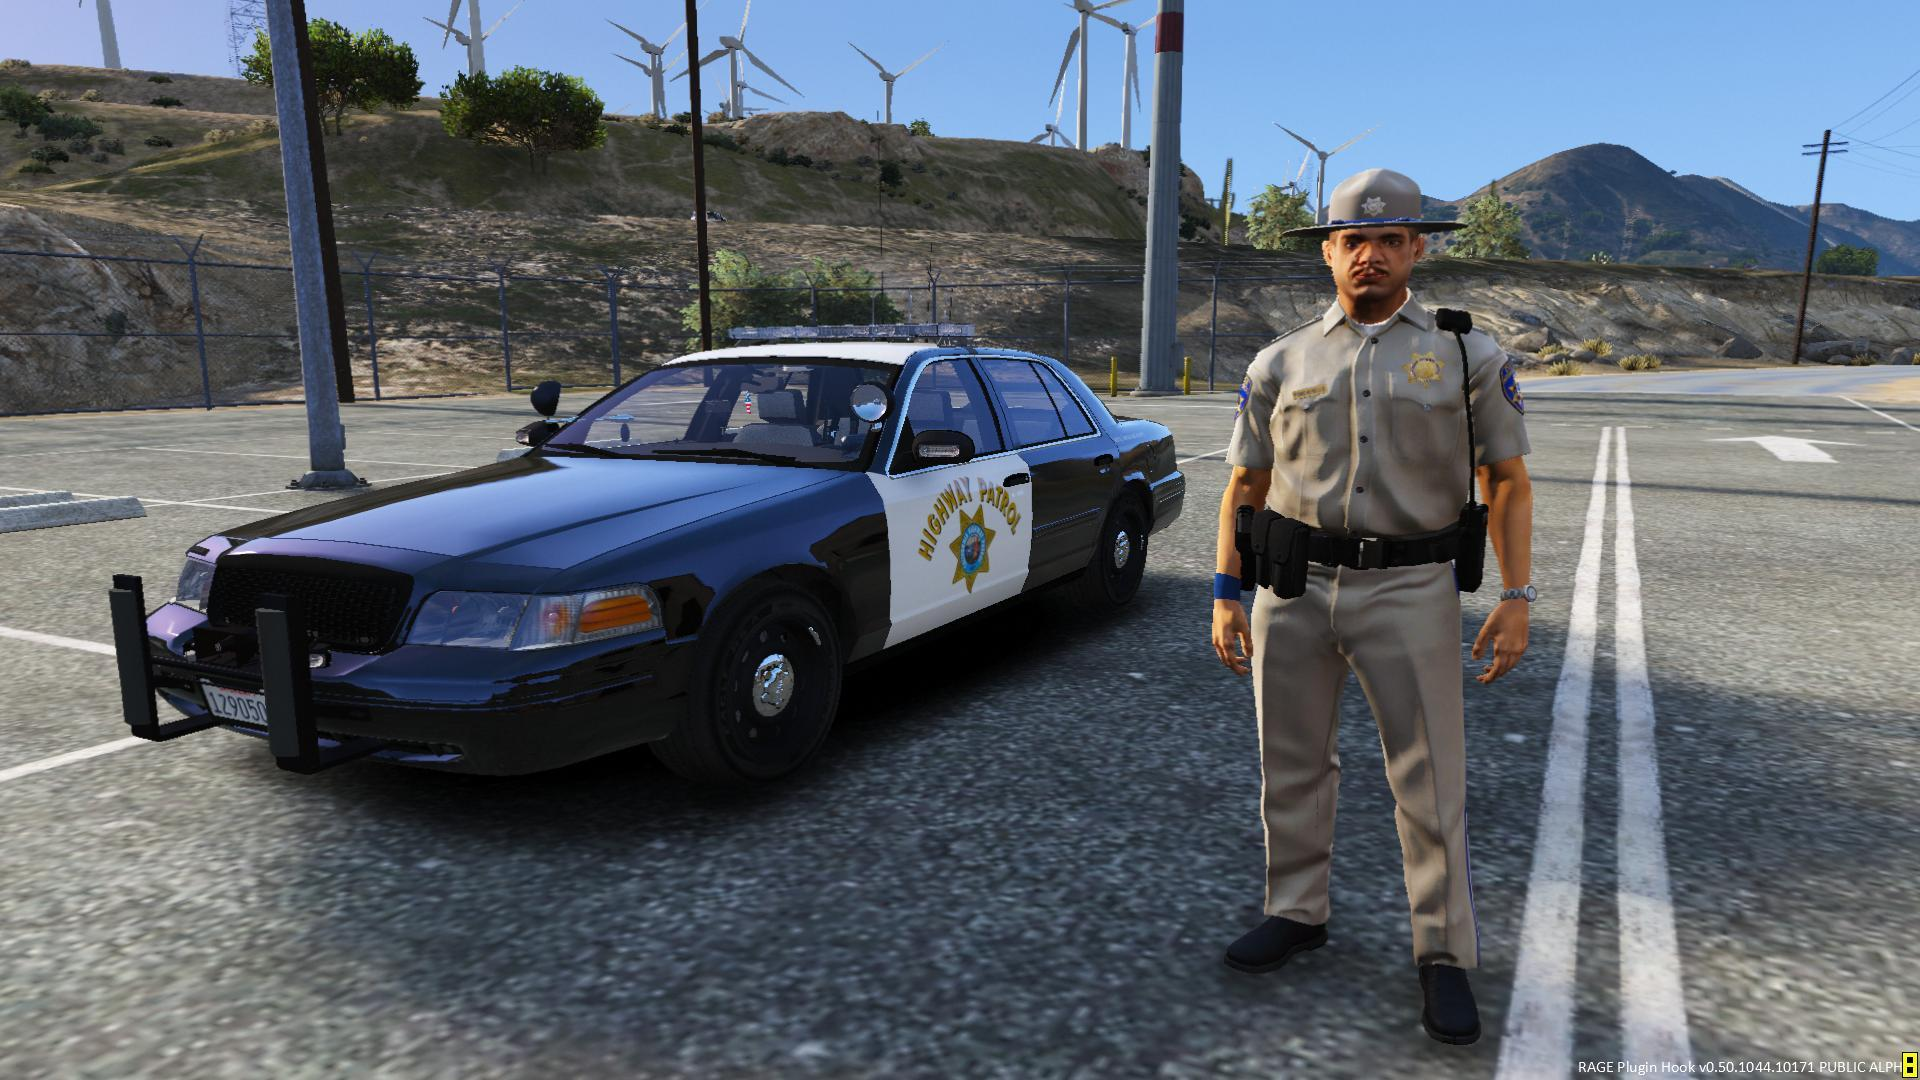 Crown Vic Car Wallpaper California Highway Patrol Officer Gta5 Mods Com